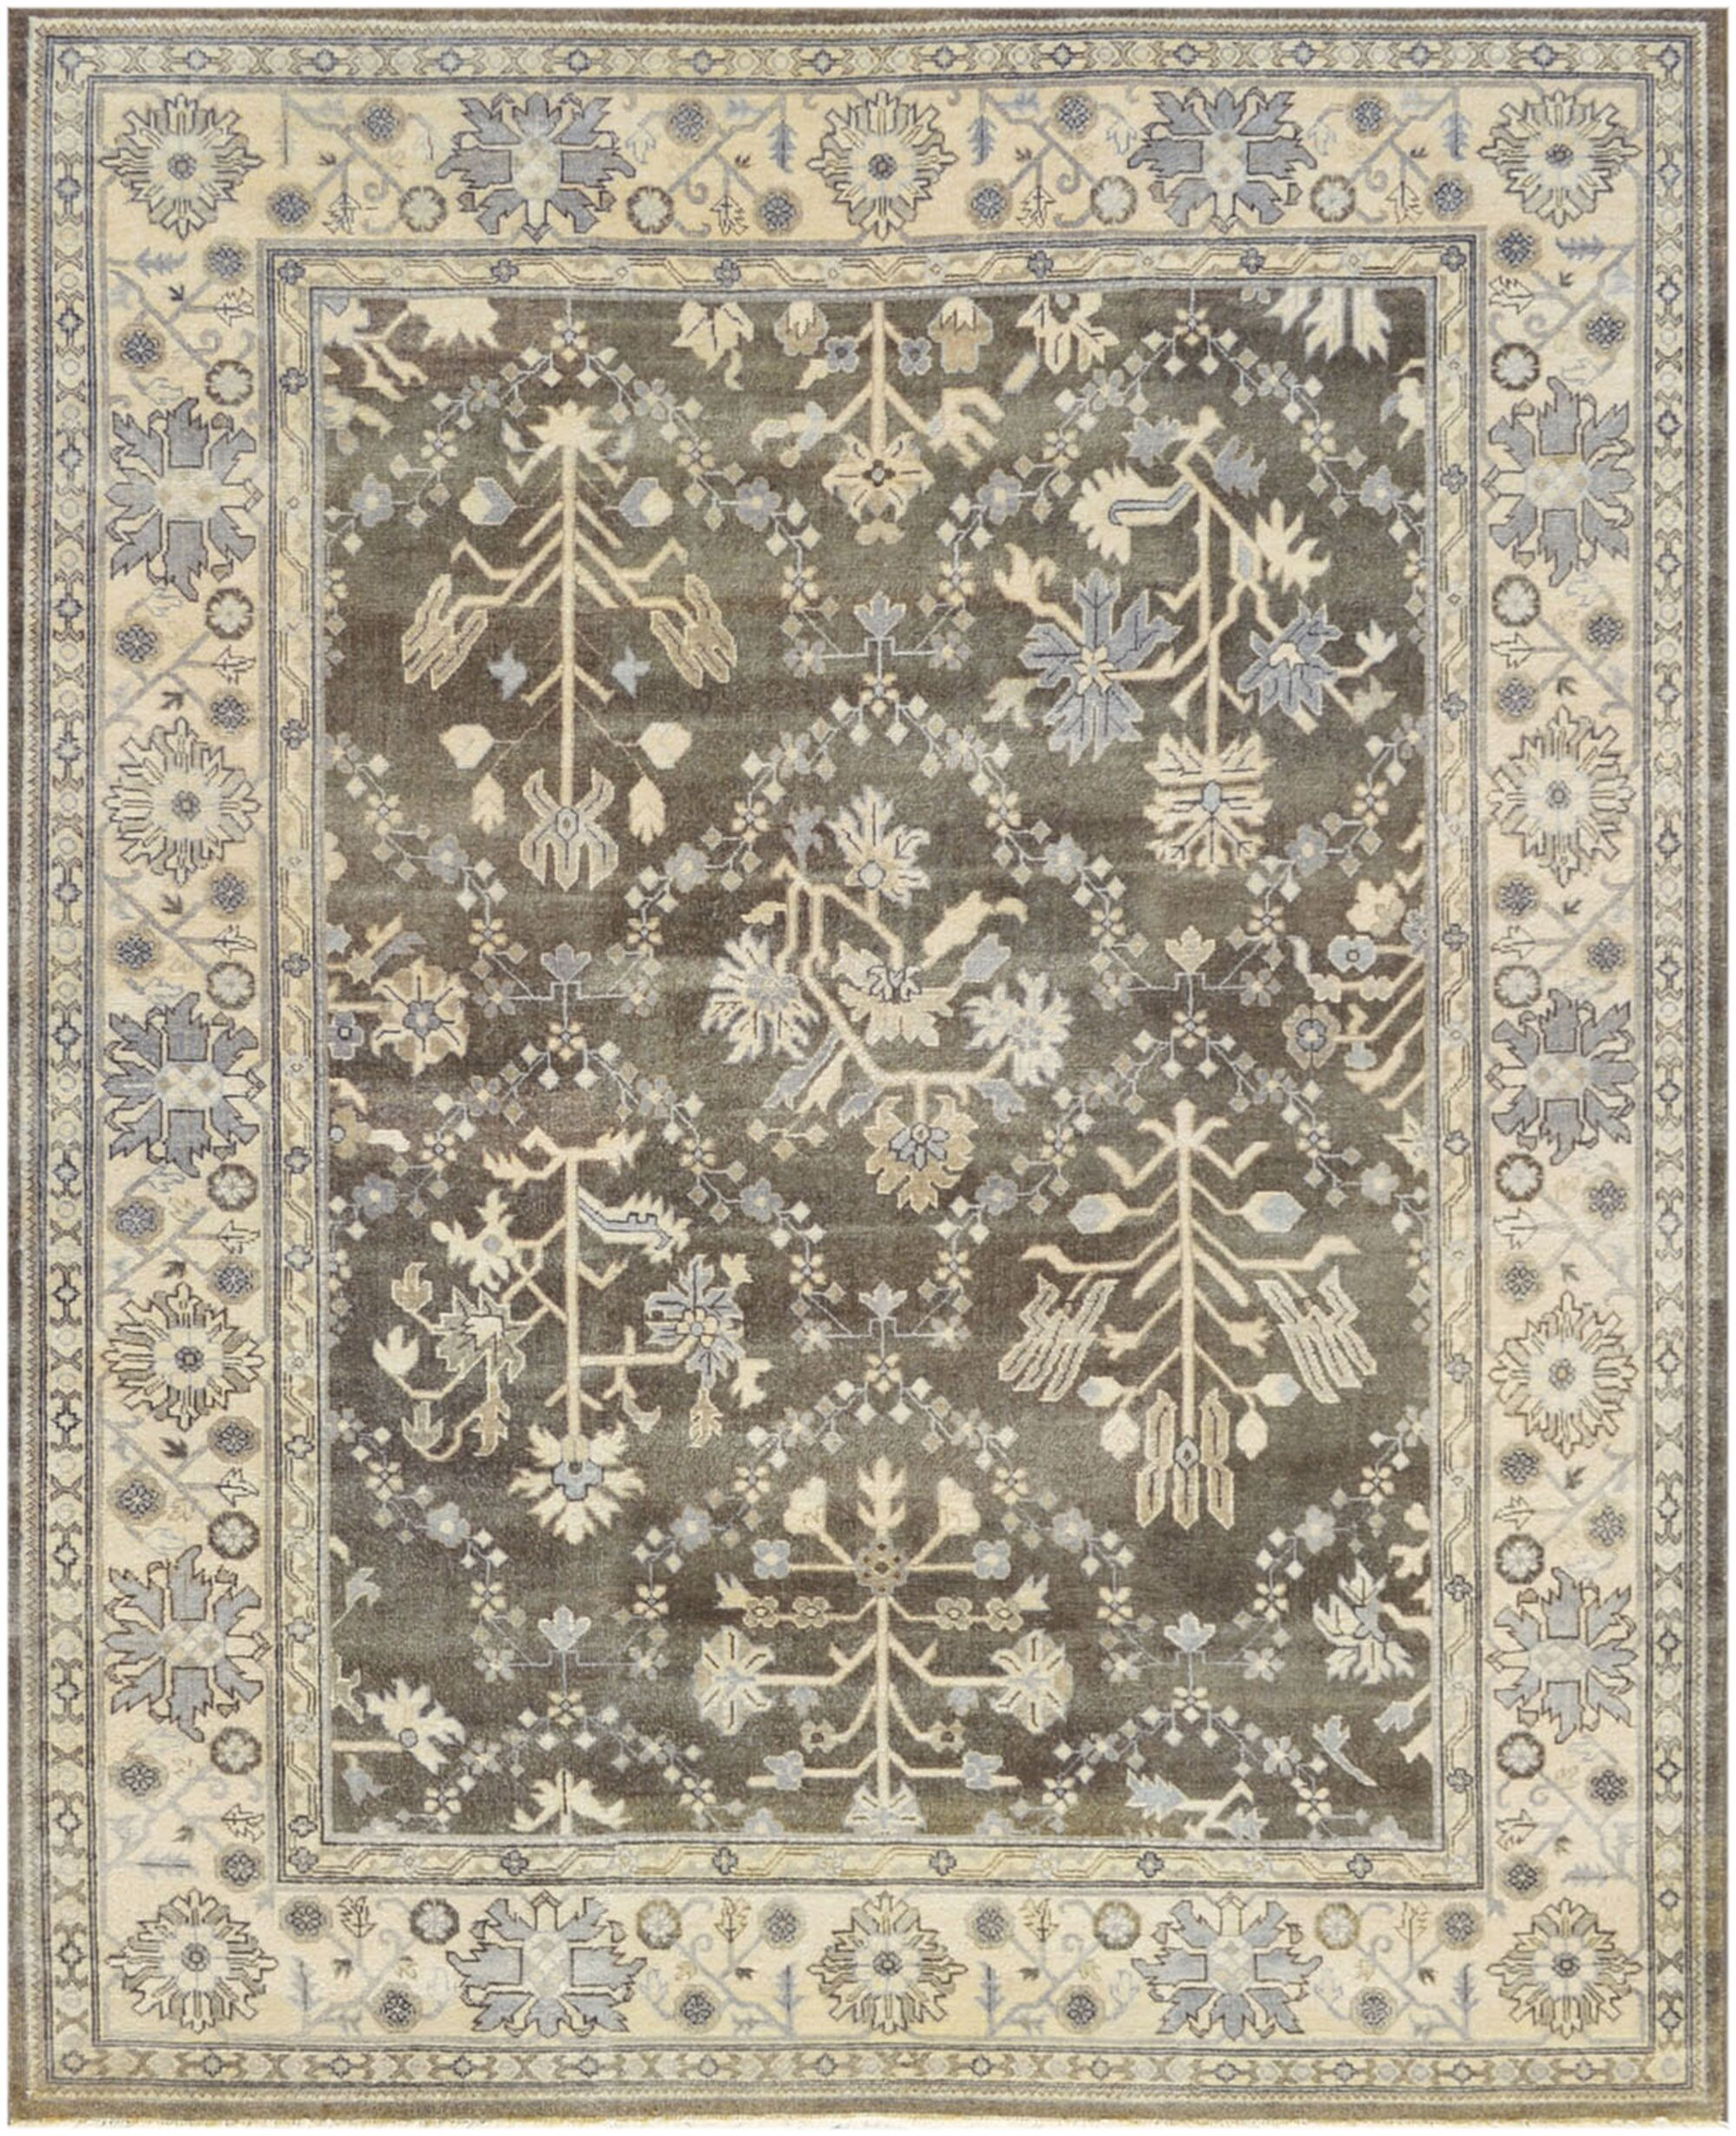 One-of-a-Kind Genuine Handwoven Wool Brown Indoor Area Rug